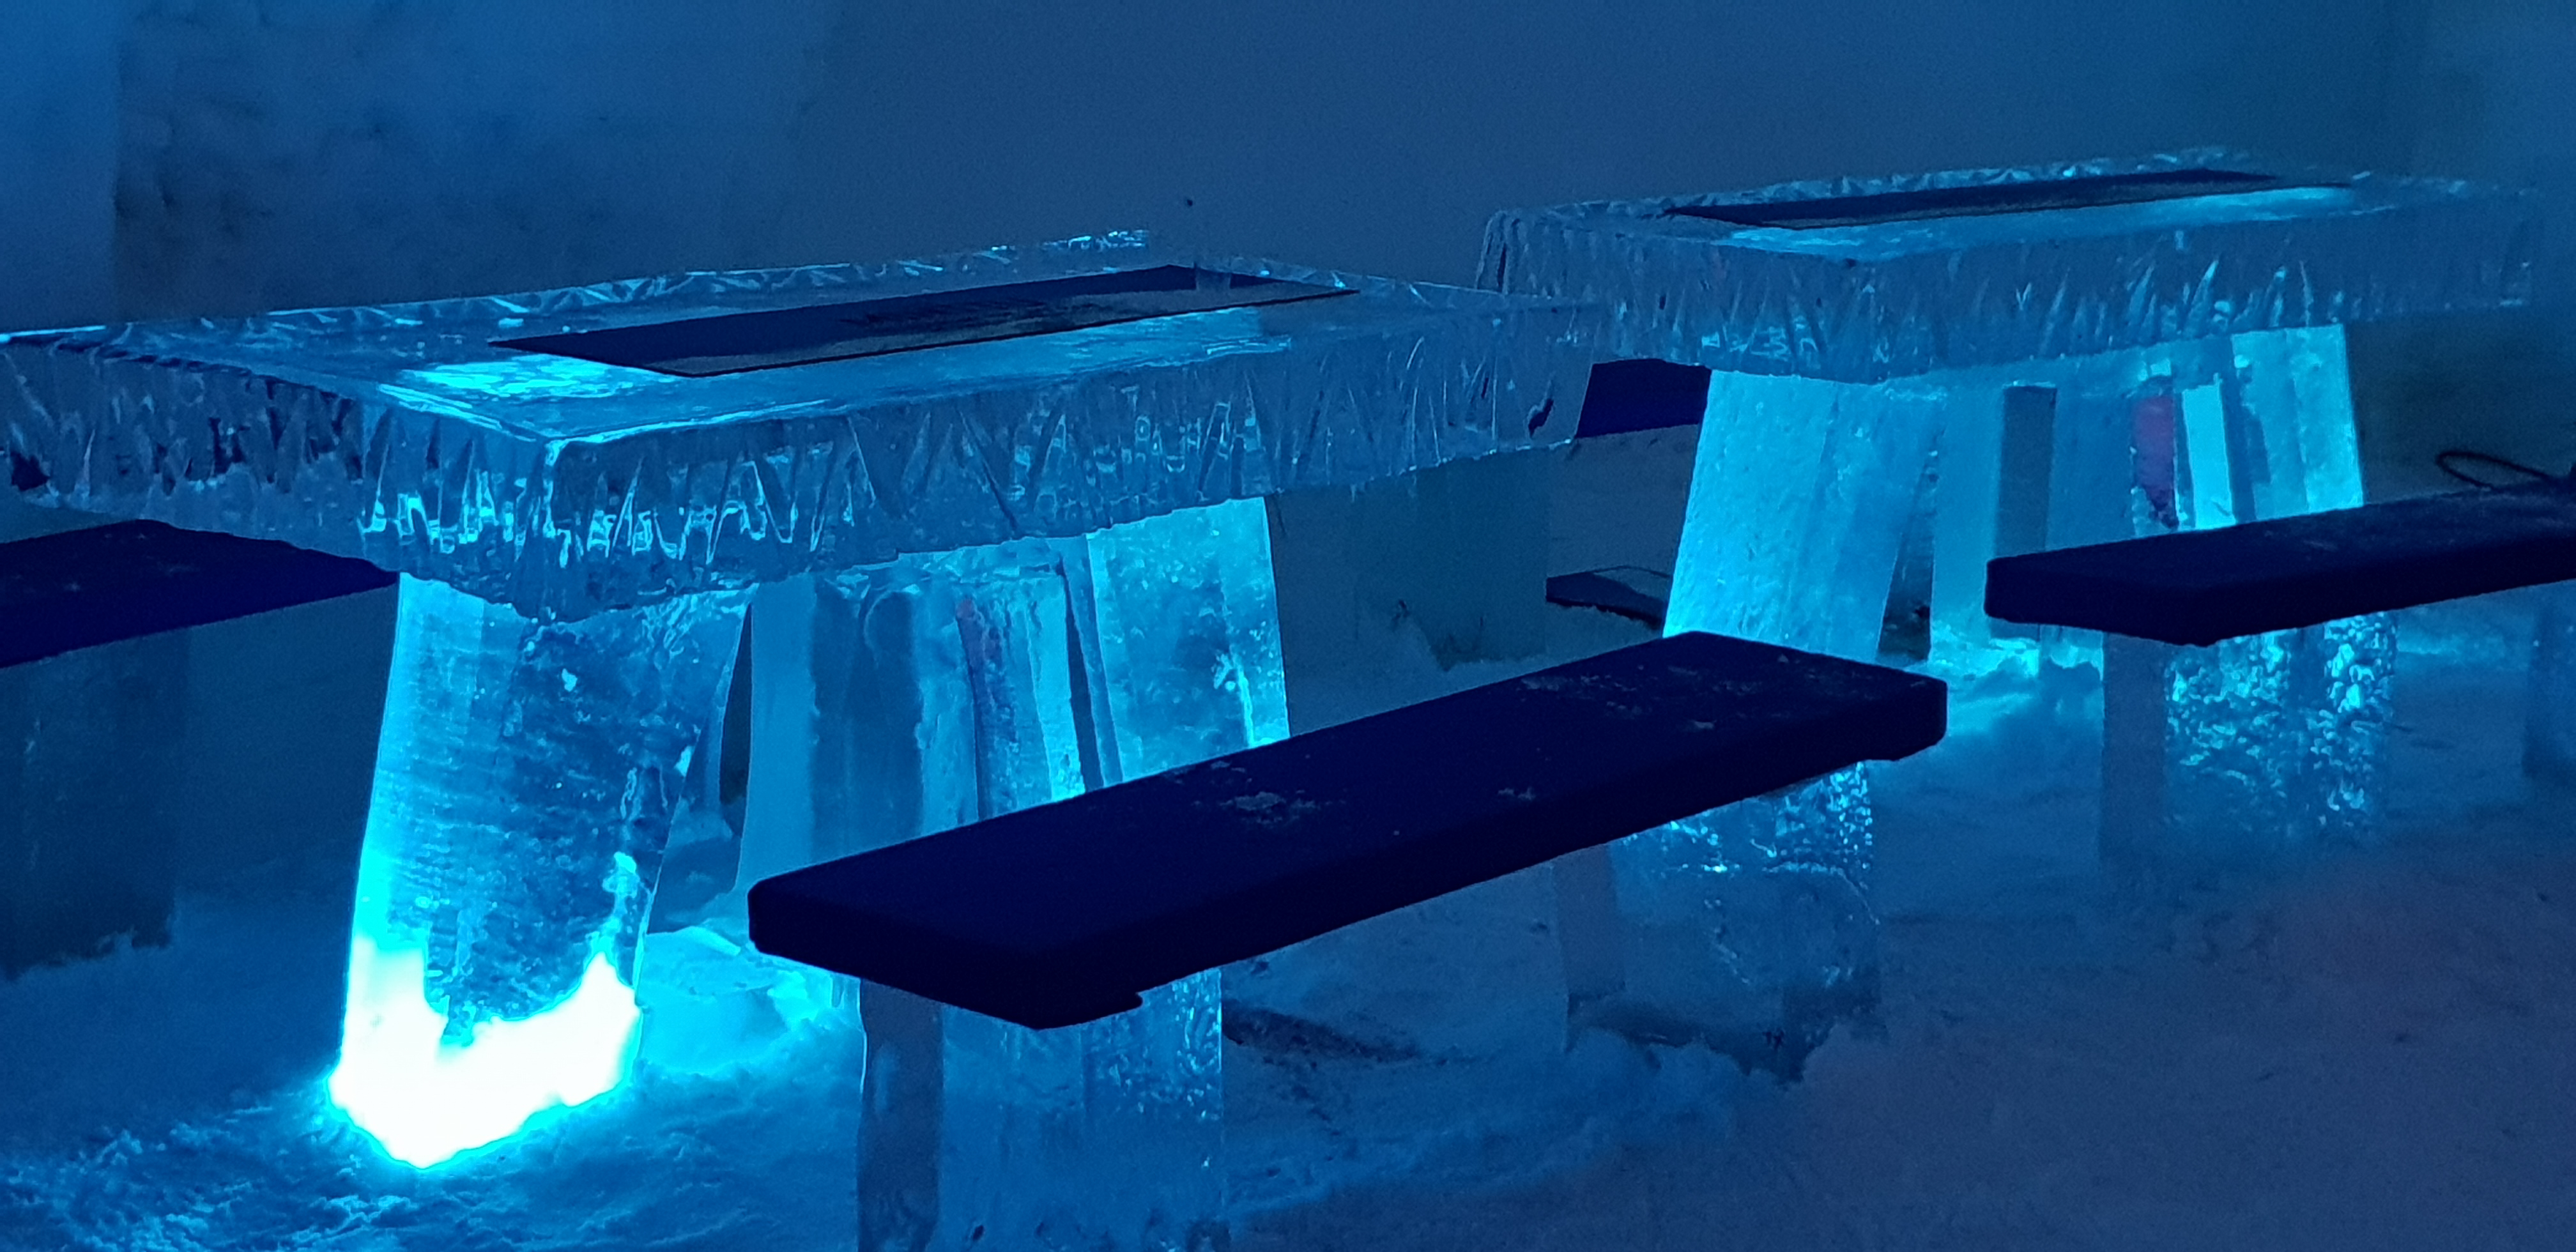 The Ice Bar's decor includes ice tables and benches.